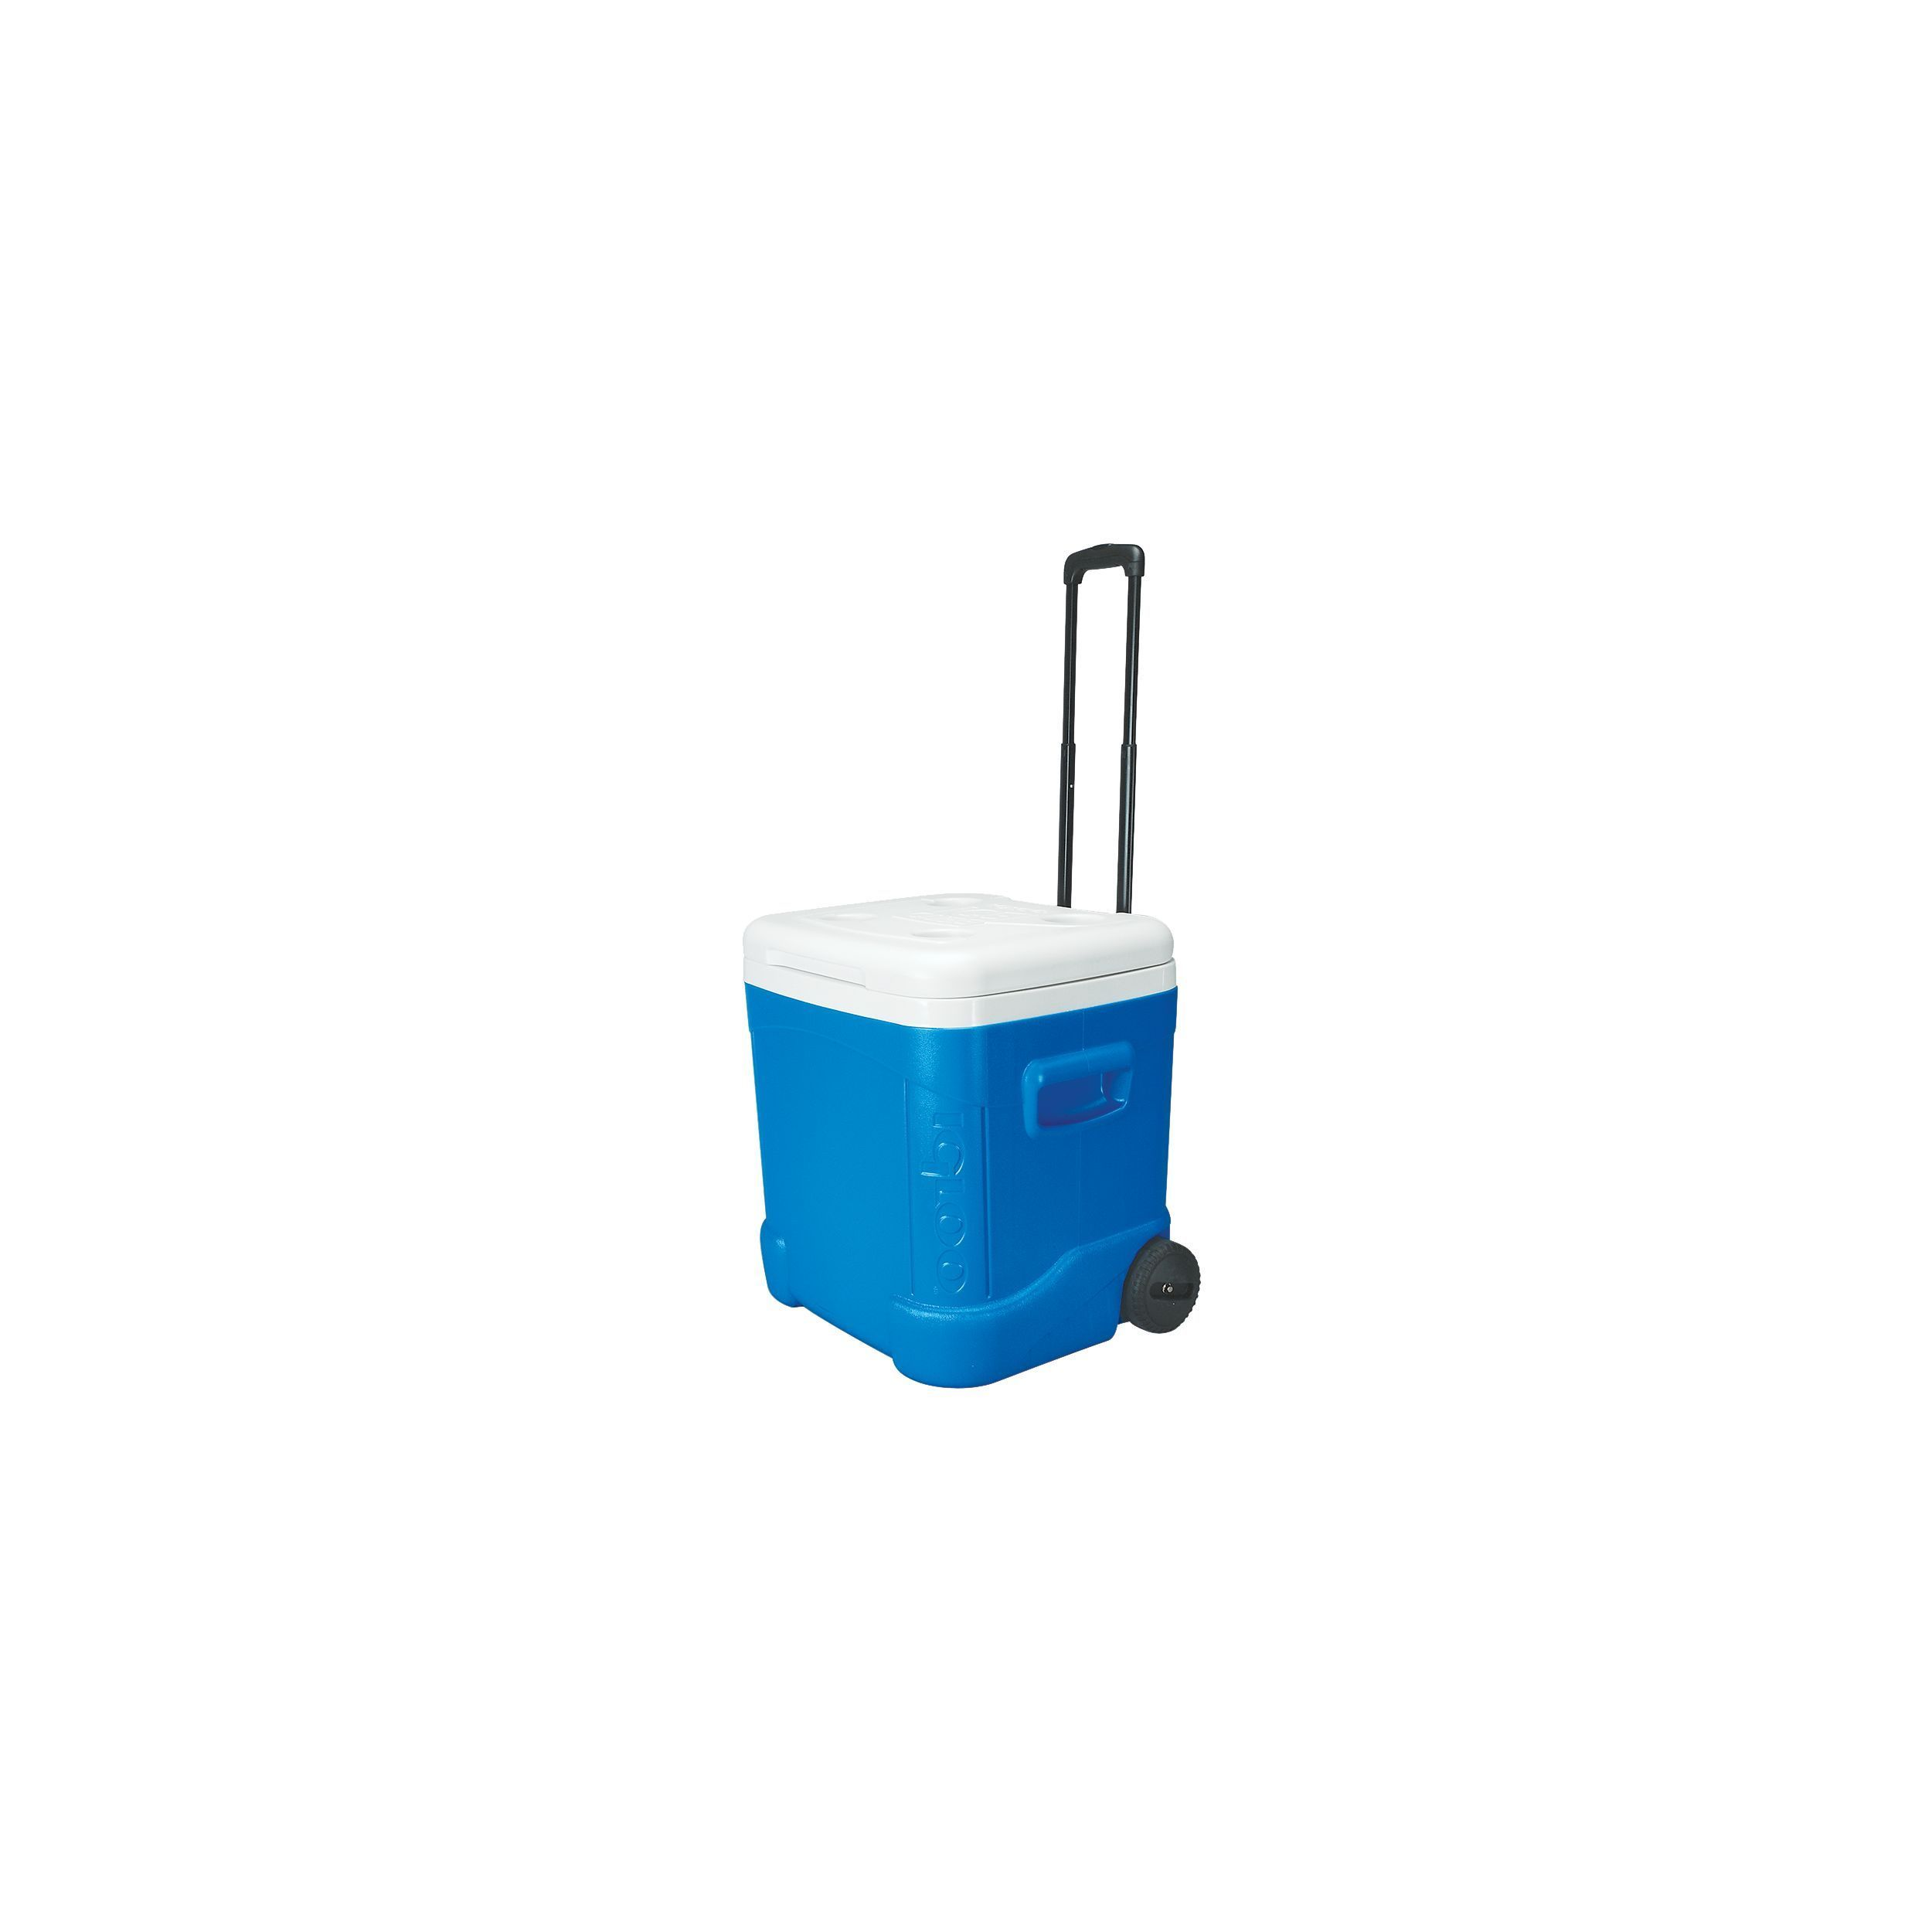 Igloo 45097 Ice Cube 60-quart Roller Cooler Blue (Blue), ...